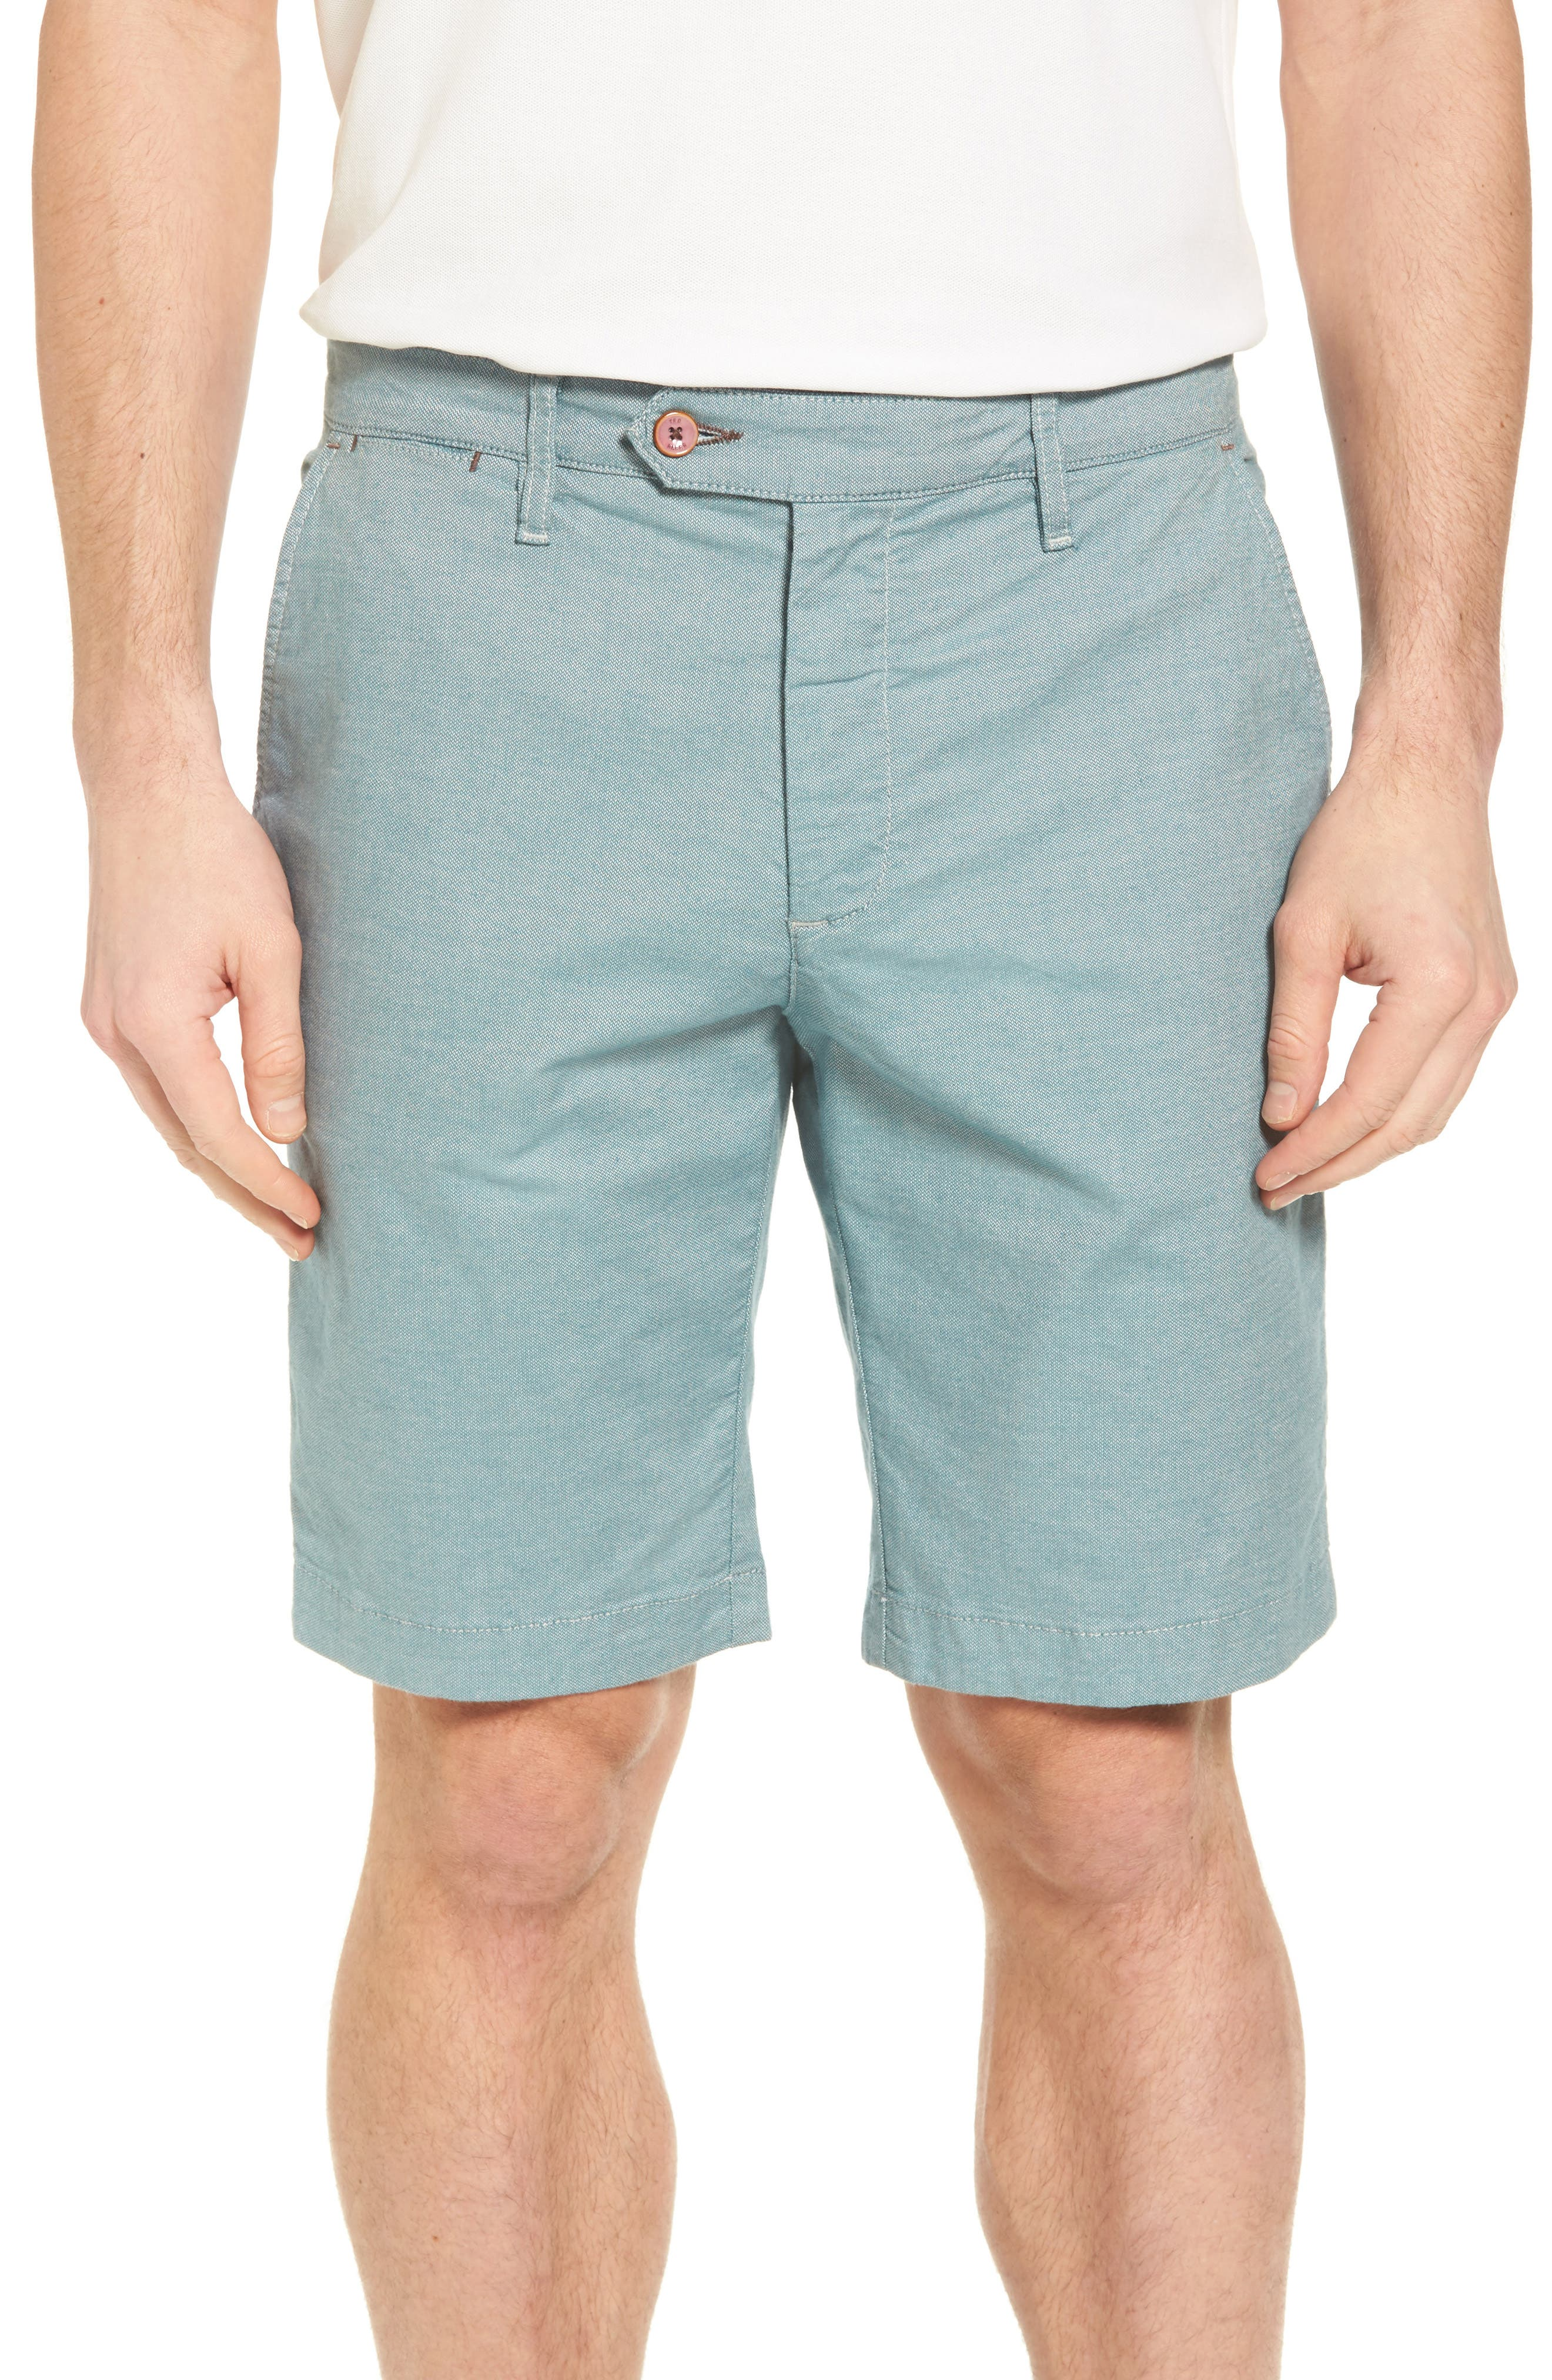 Alternate Image 1 Selected - Ted Baker London Herbott Stretch Cotton Shorts